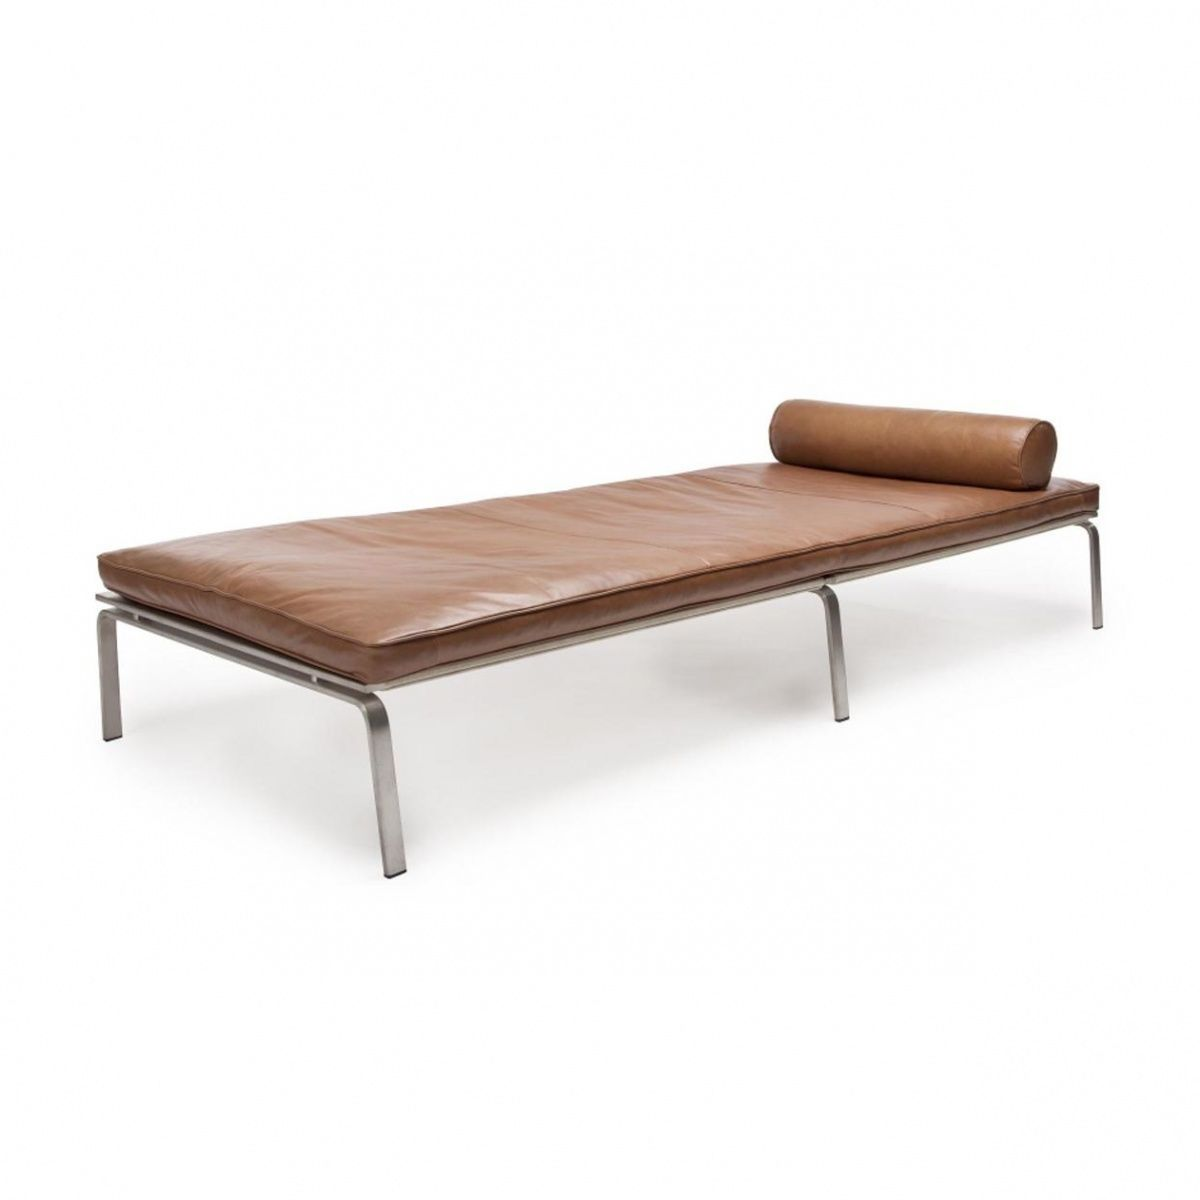 Man Lounge Daybed Liege Leather Daybed Furniture Design Daybed